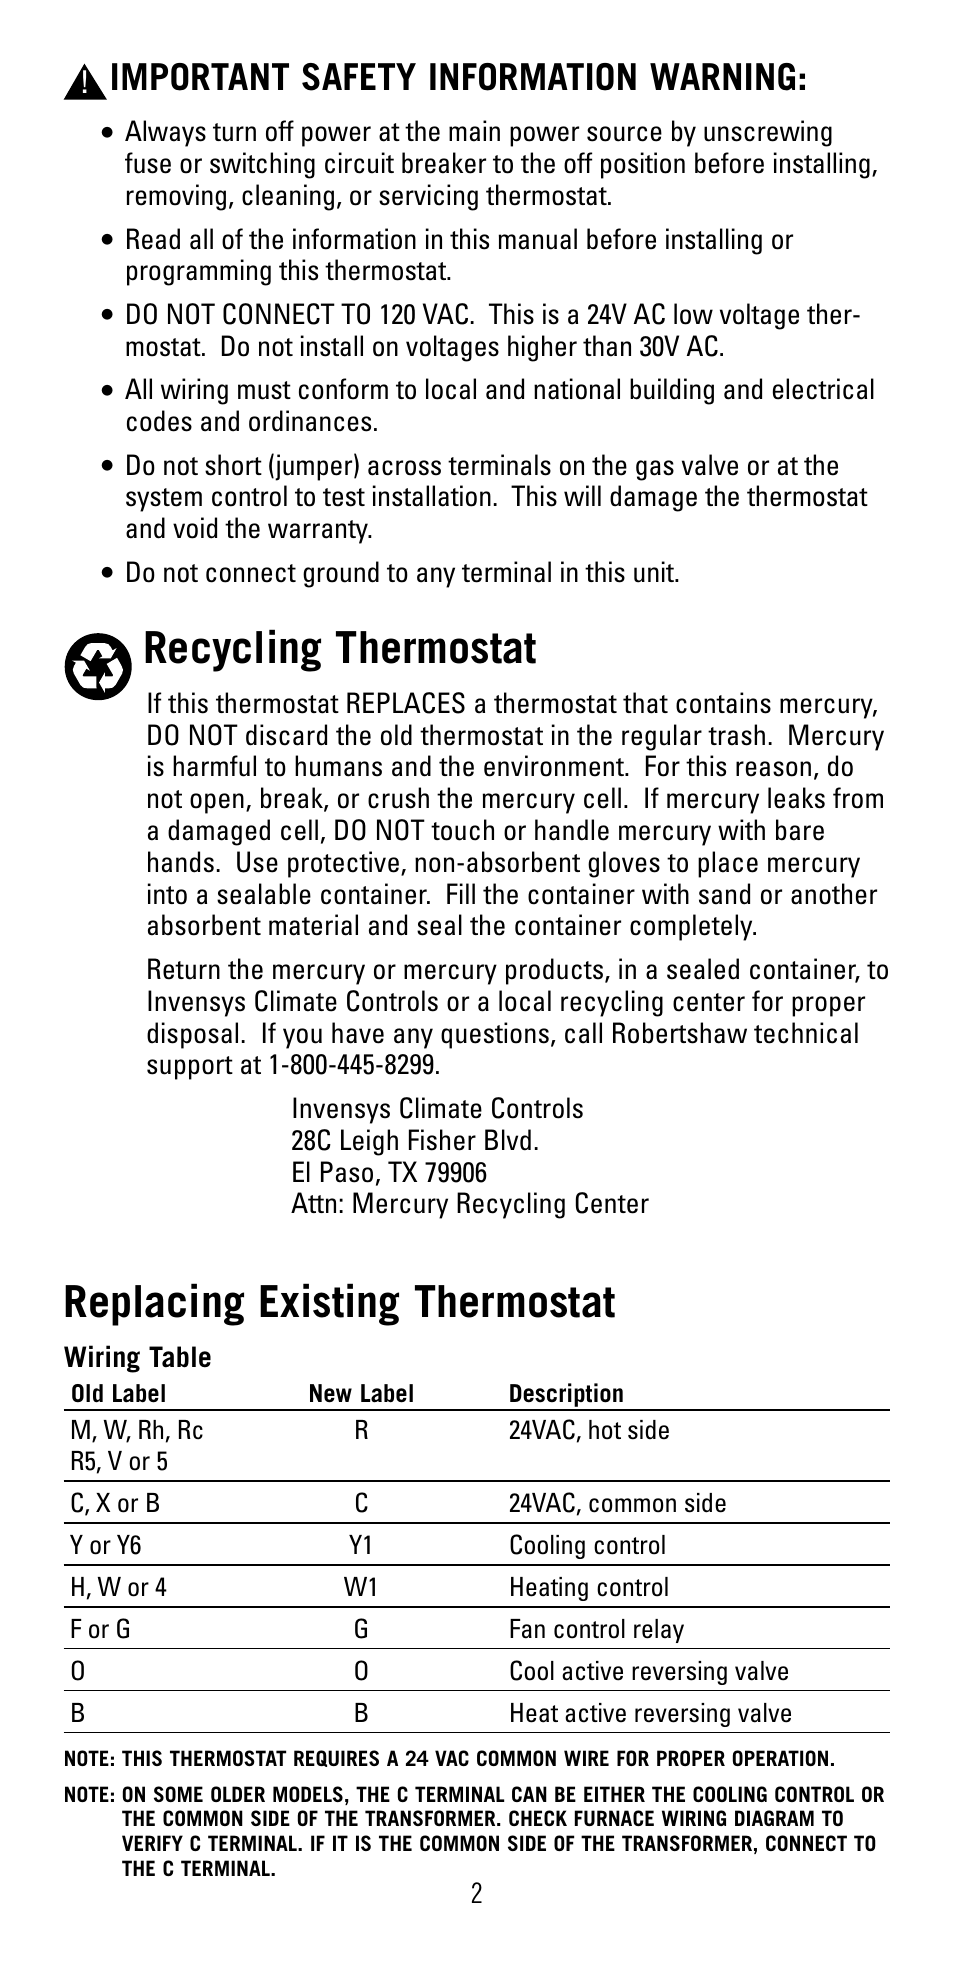 Recycling Thermostat  Replacing Existing Thermostat